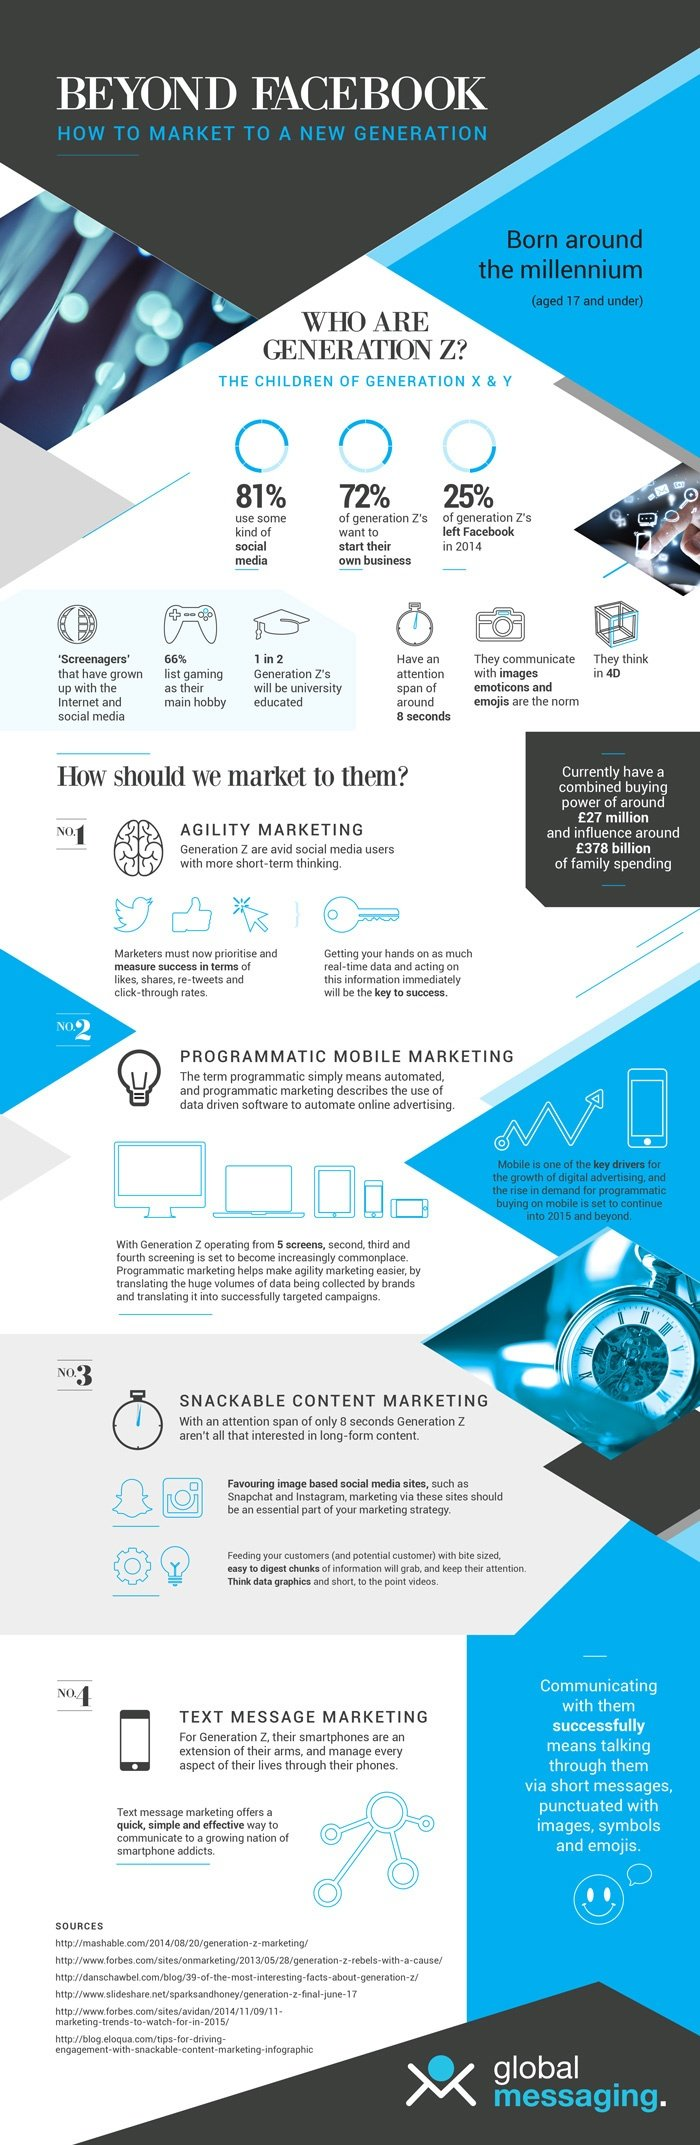 Beyond Facebook Infographic